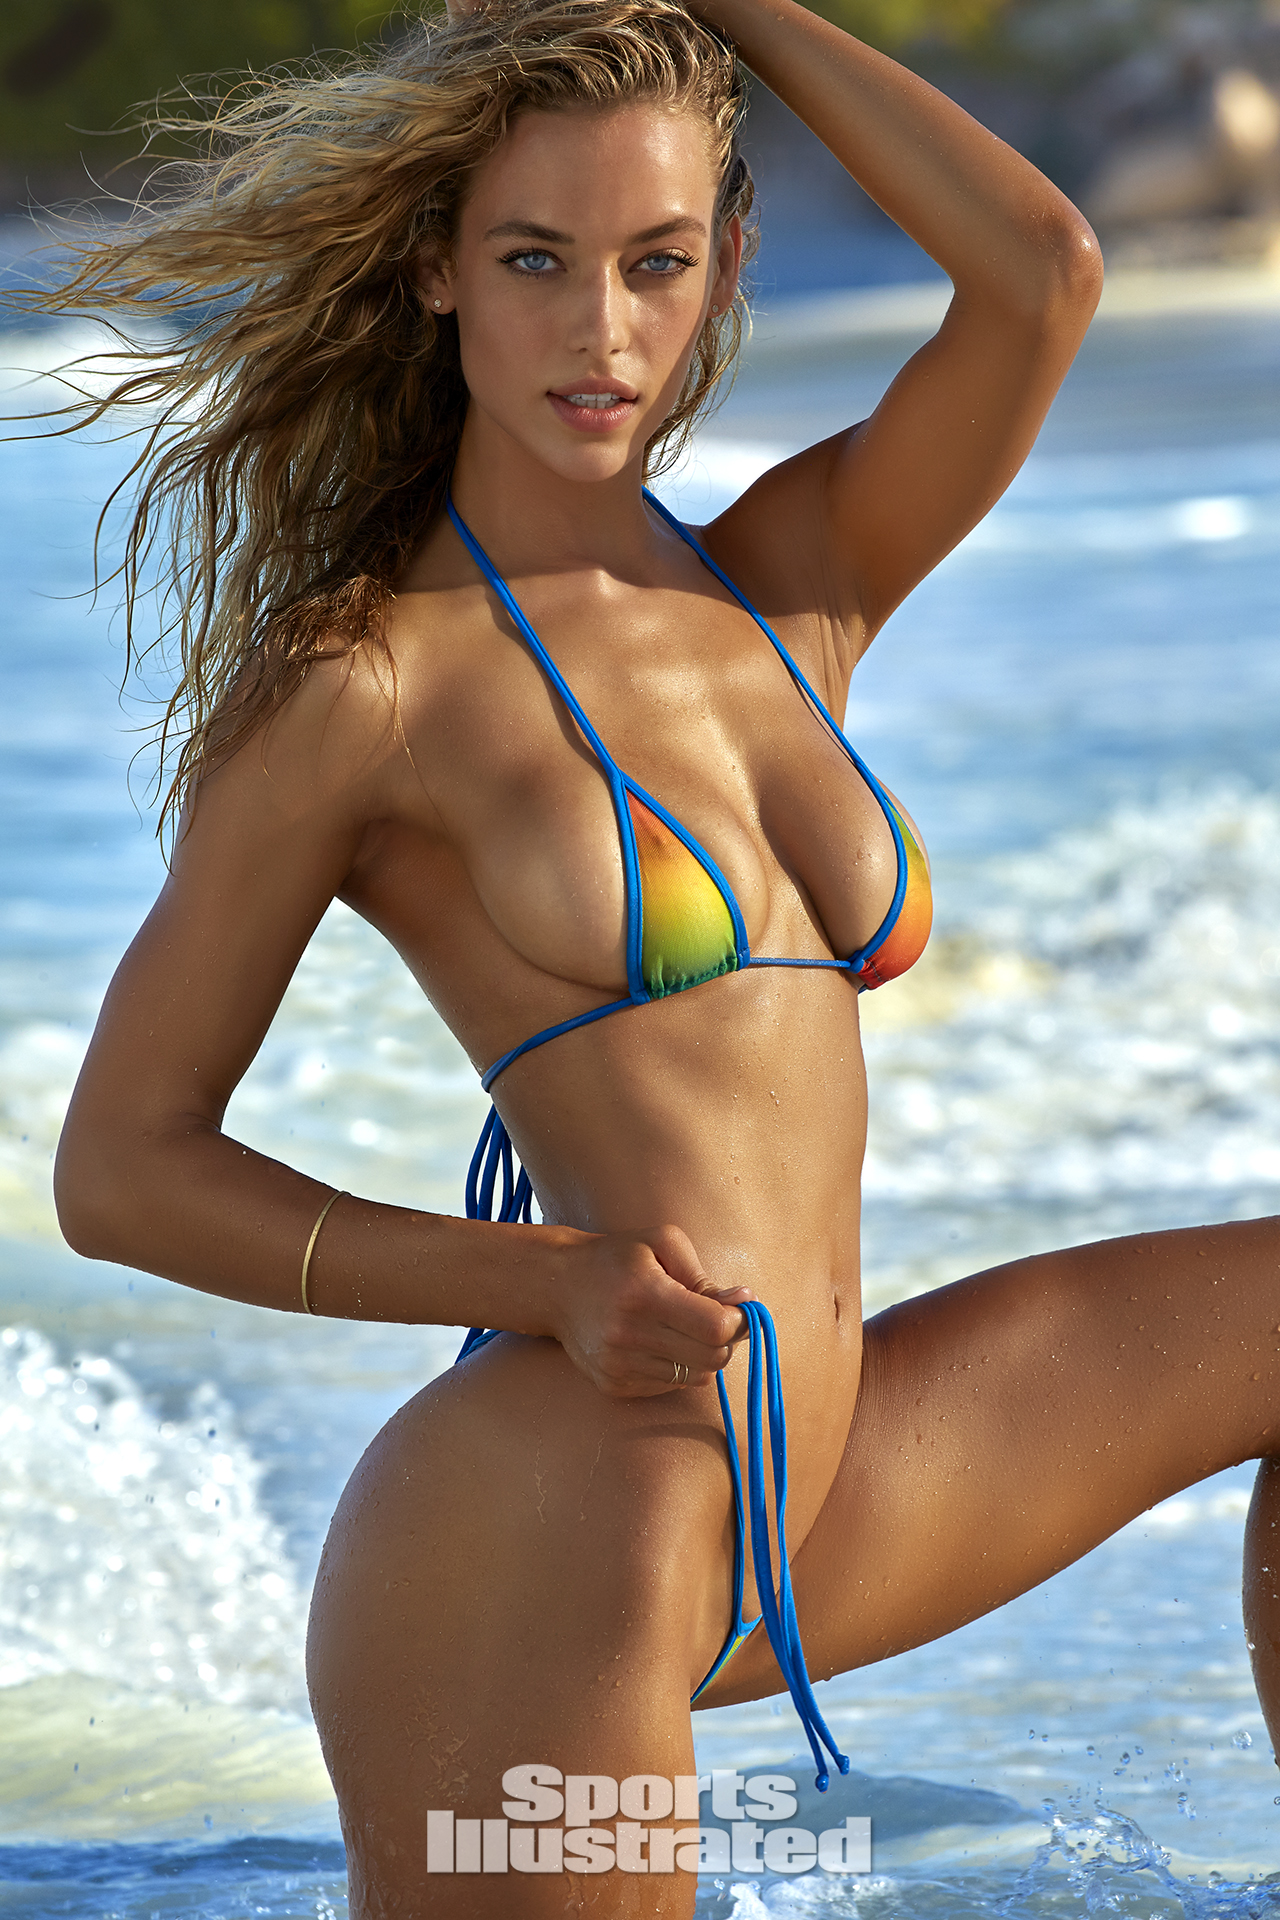 Hannah Ferguson was photographed by James Macari in Turks & Caicos. Swimsuit by Lybethras.